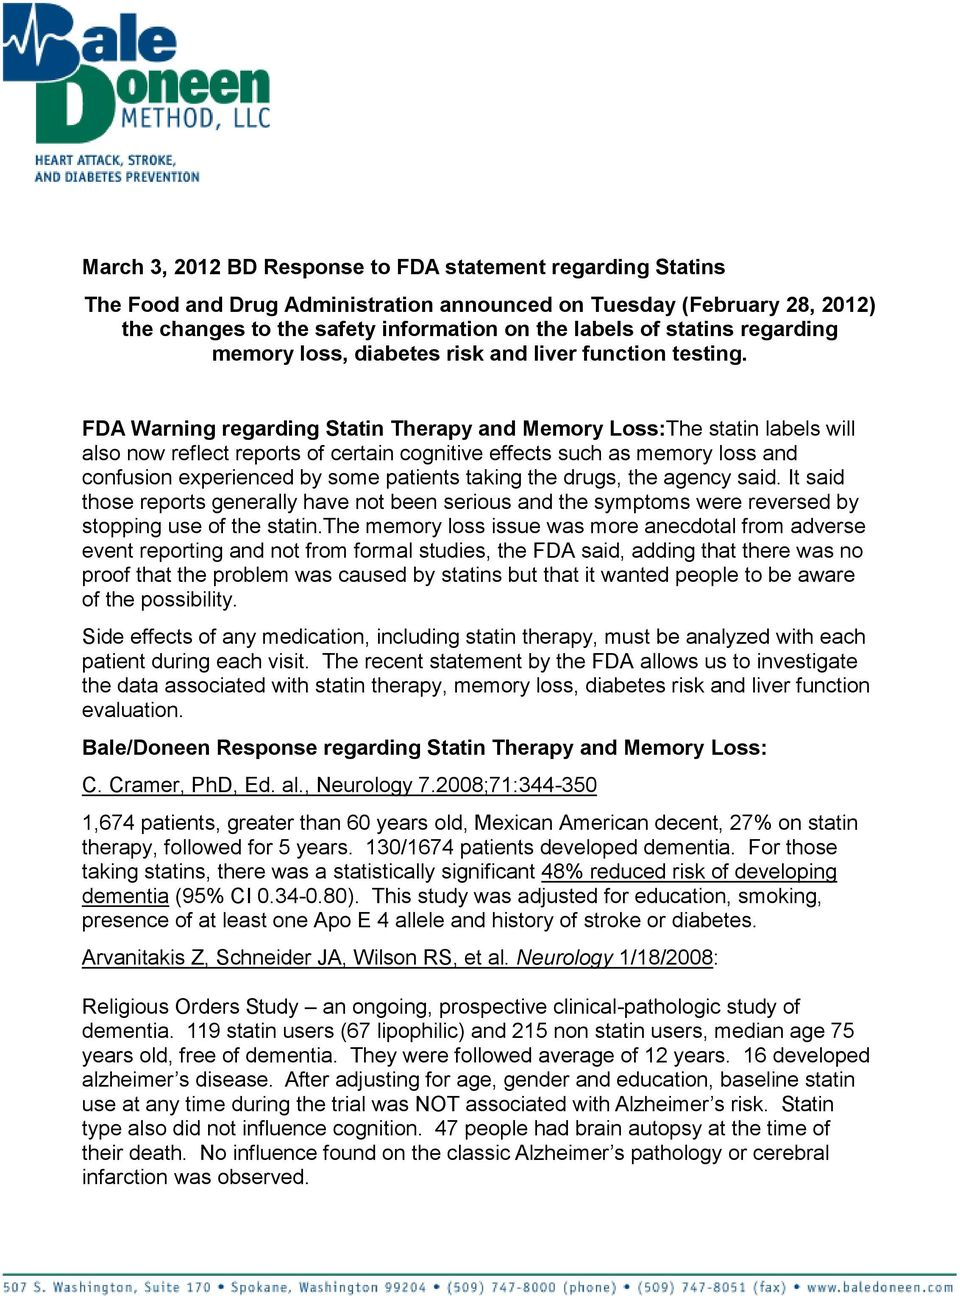 FDA Warning regarding Statin Therapy and Memory Loss:The statin labels will also now reflect reports of certain cognitive effects such as memory loss and confusion experienced by some patients taking